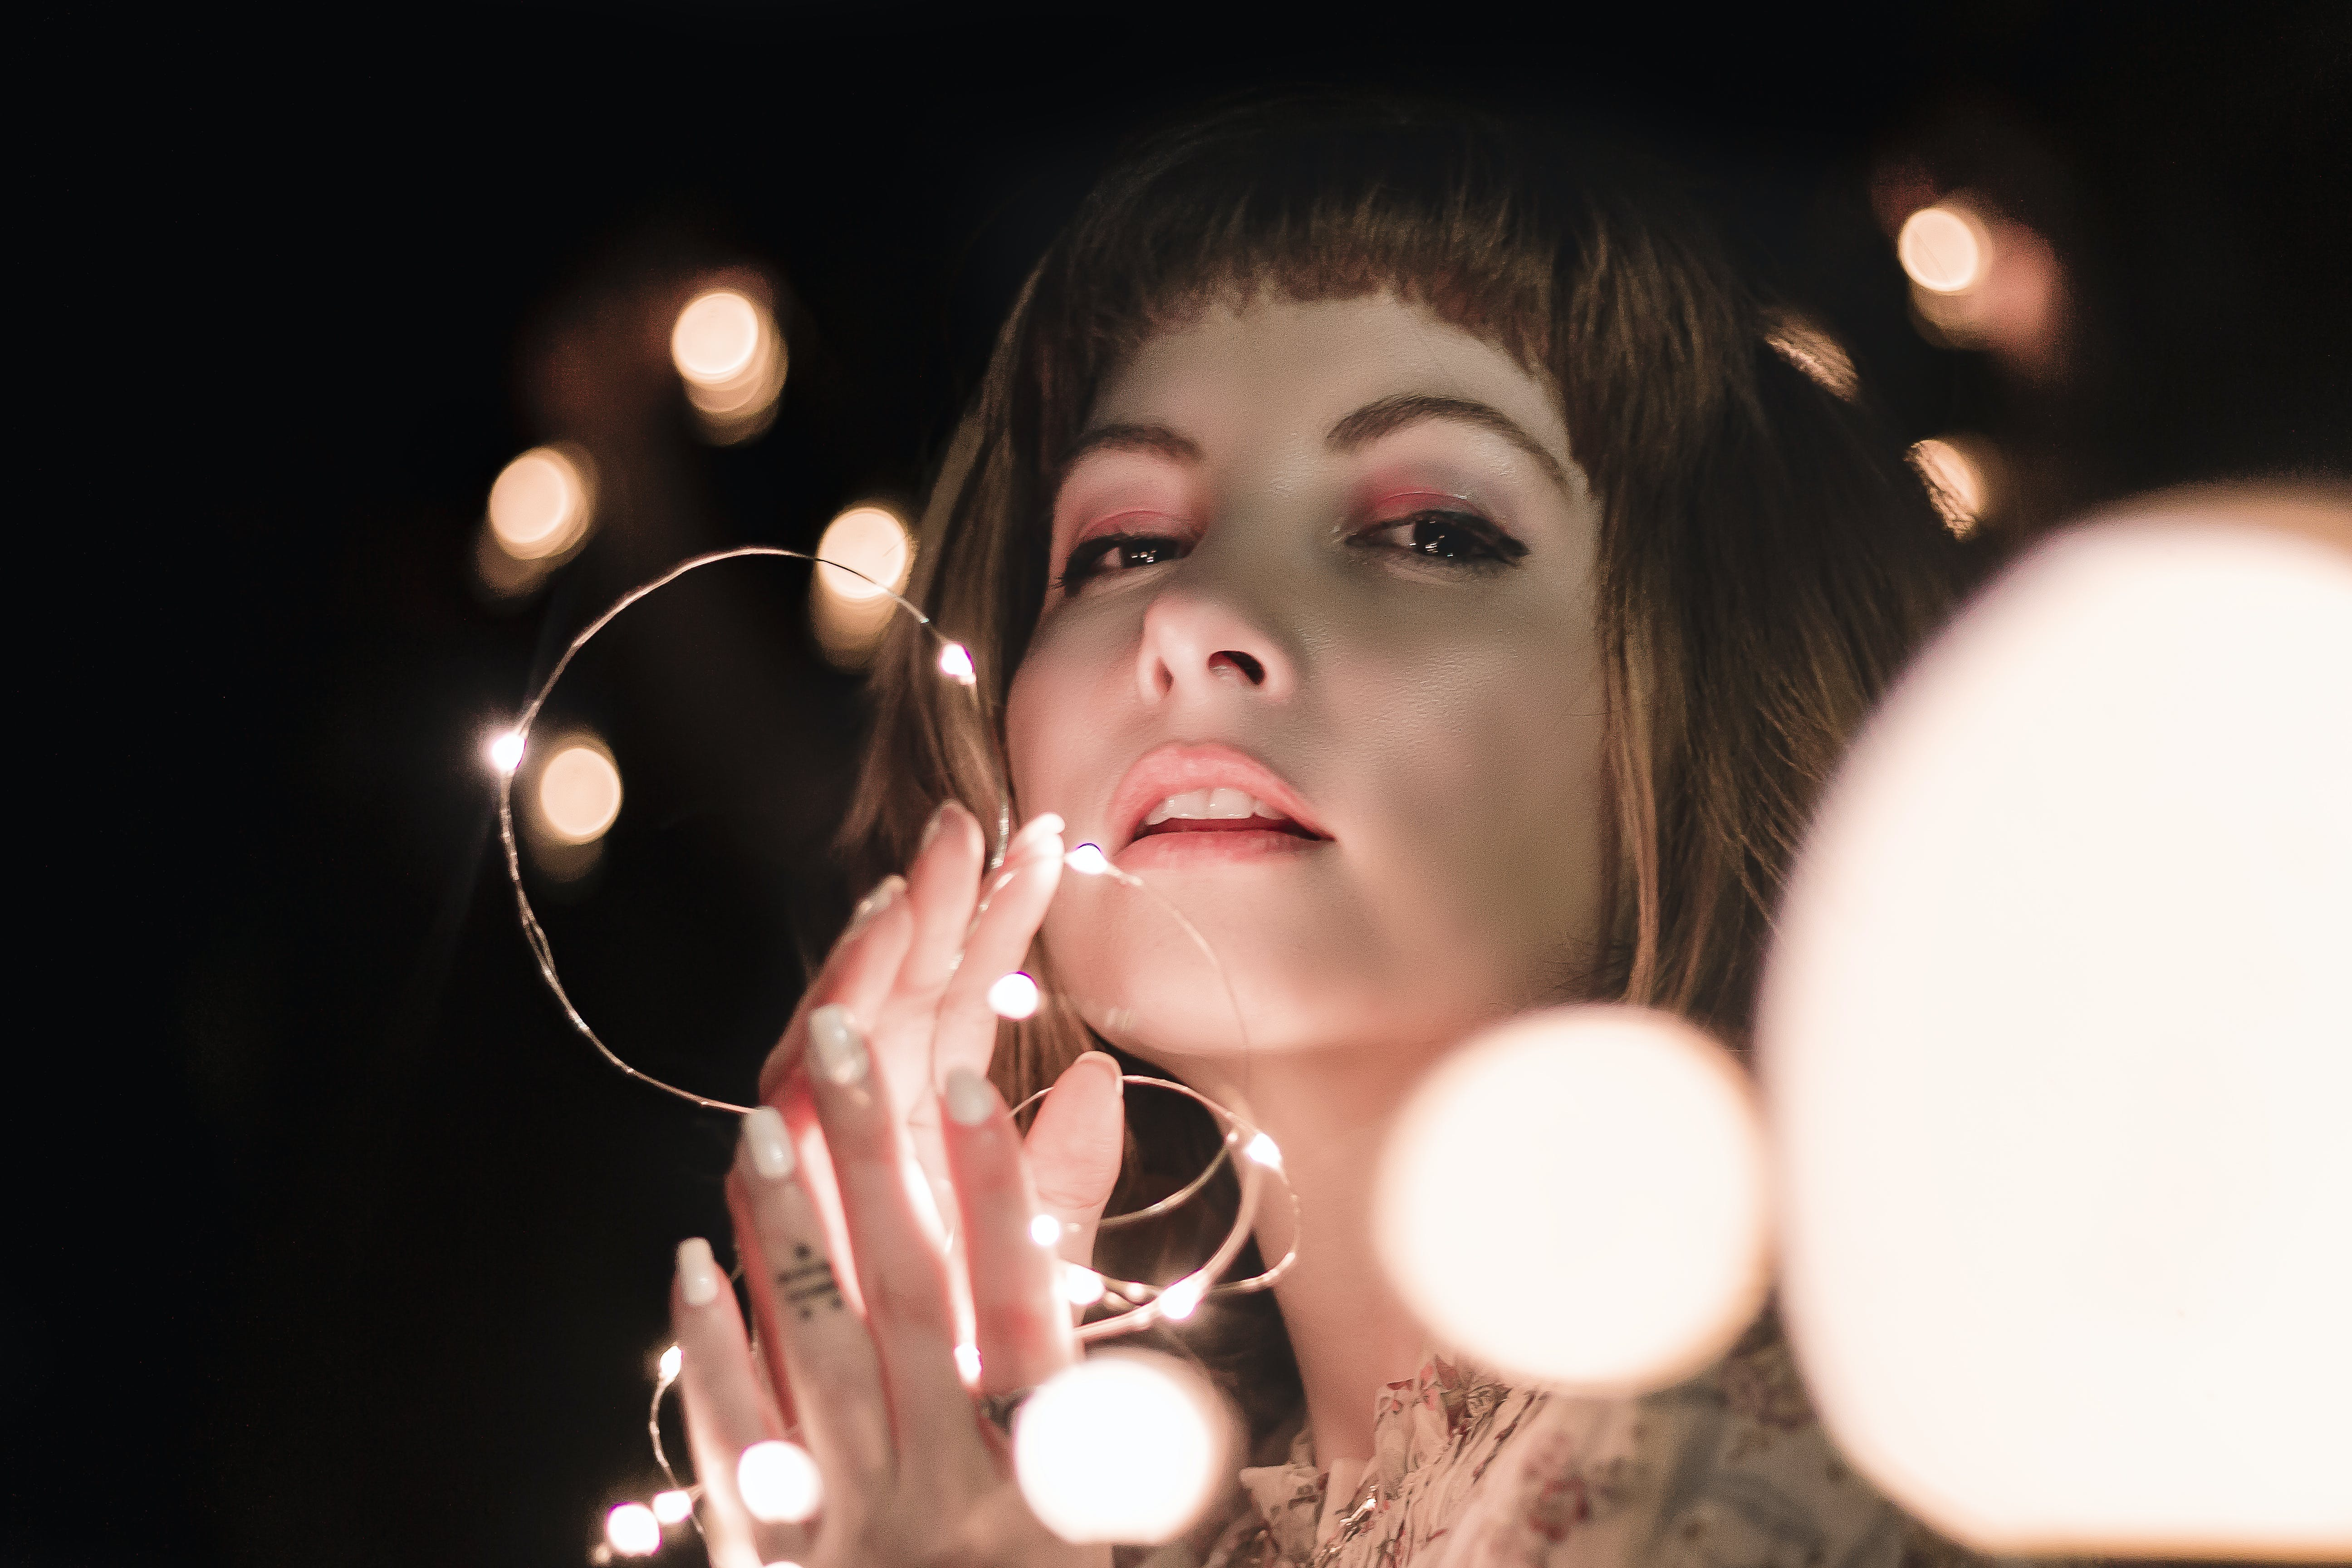 Close-up Photo of Woman Posing while Holding Lit String Lights